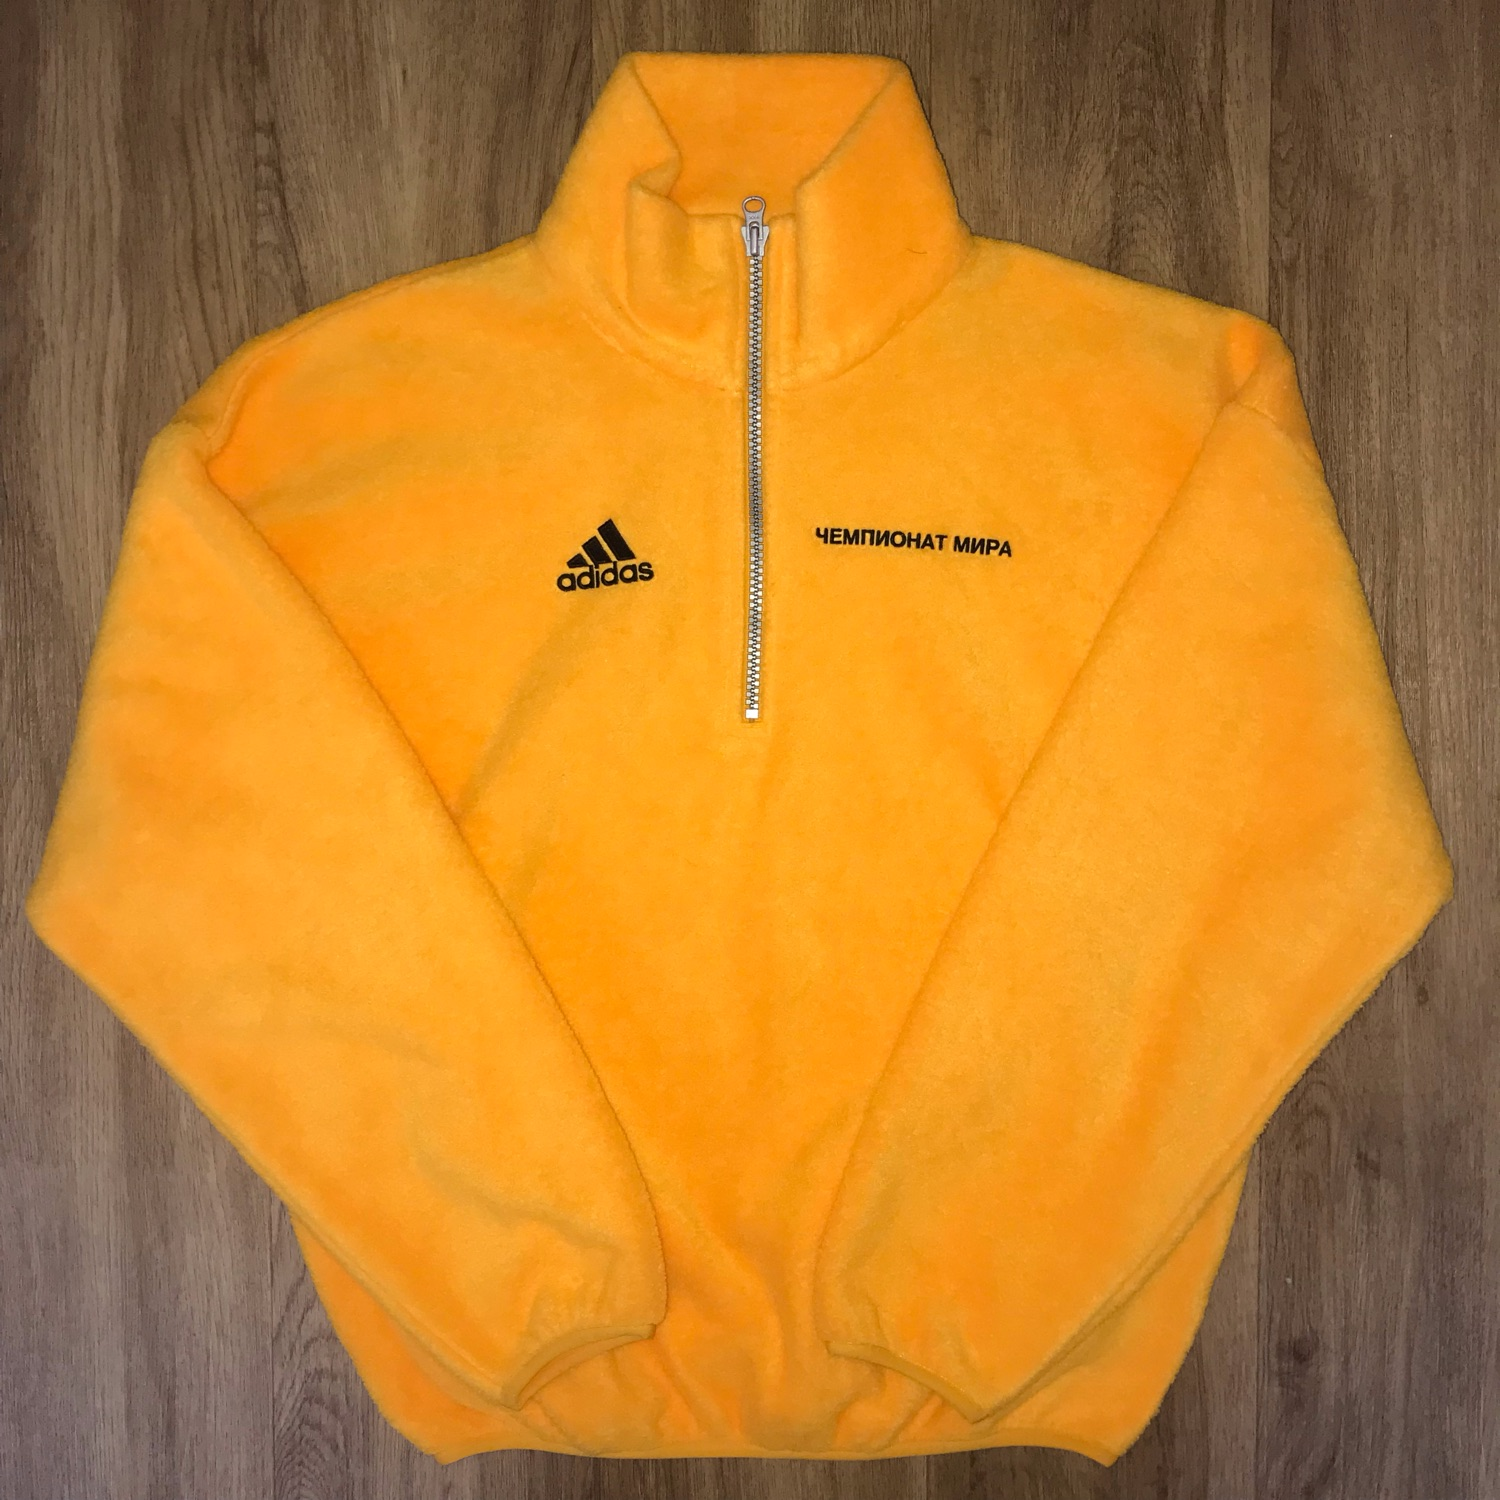 adidas fleece yellow